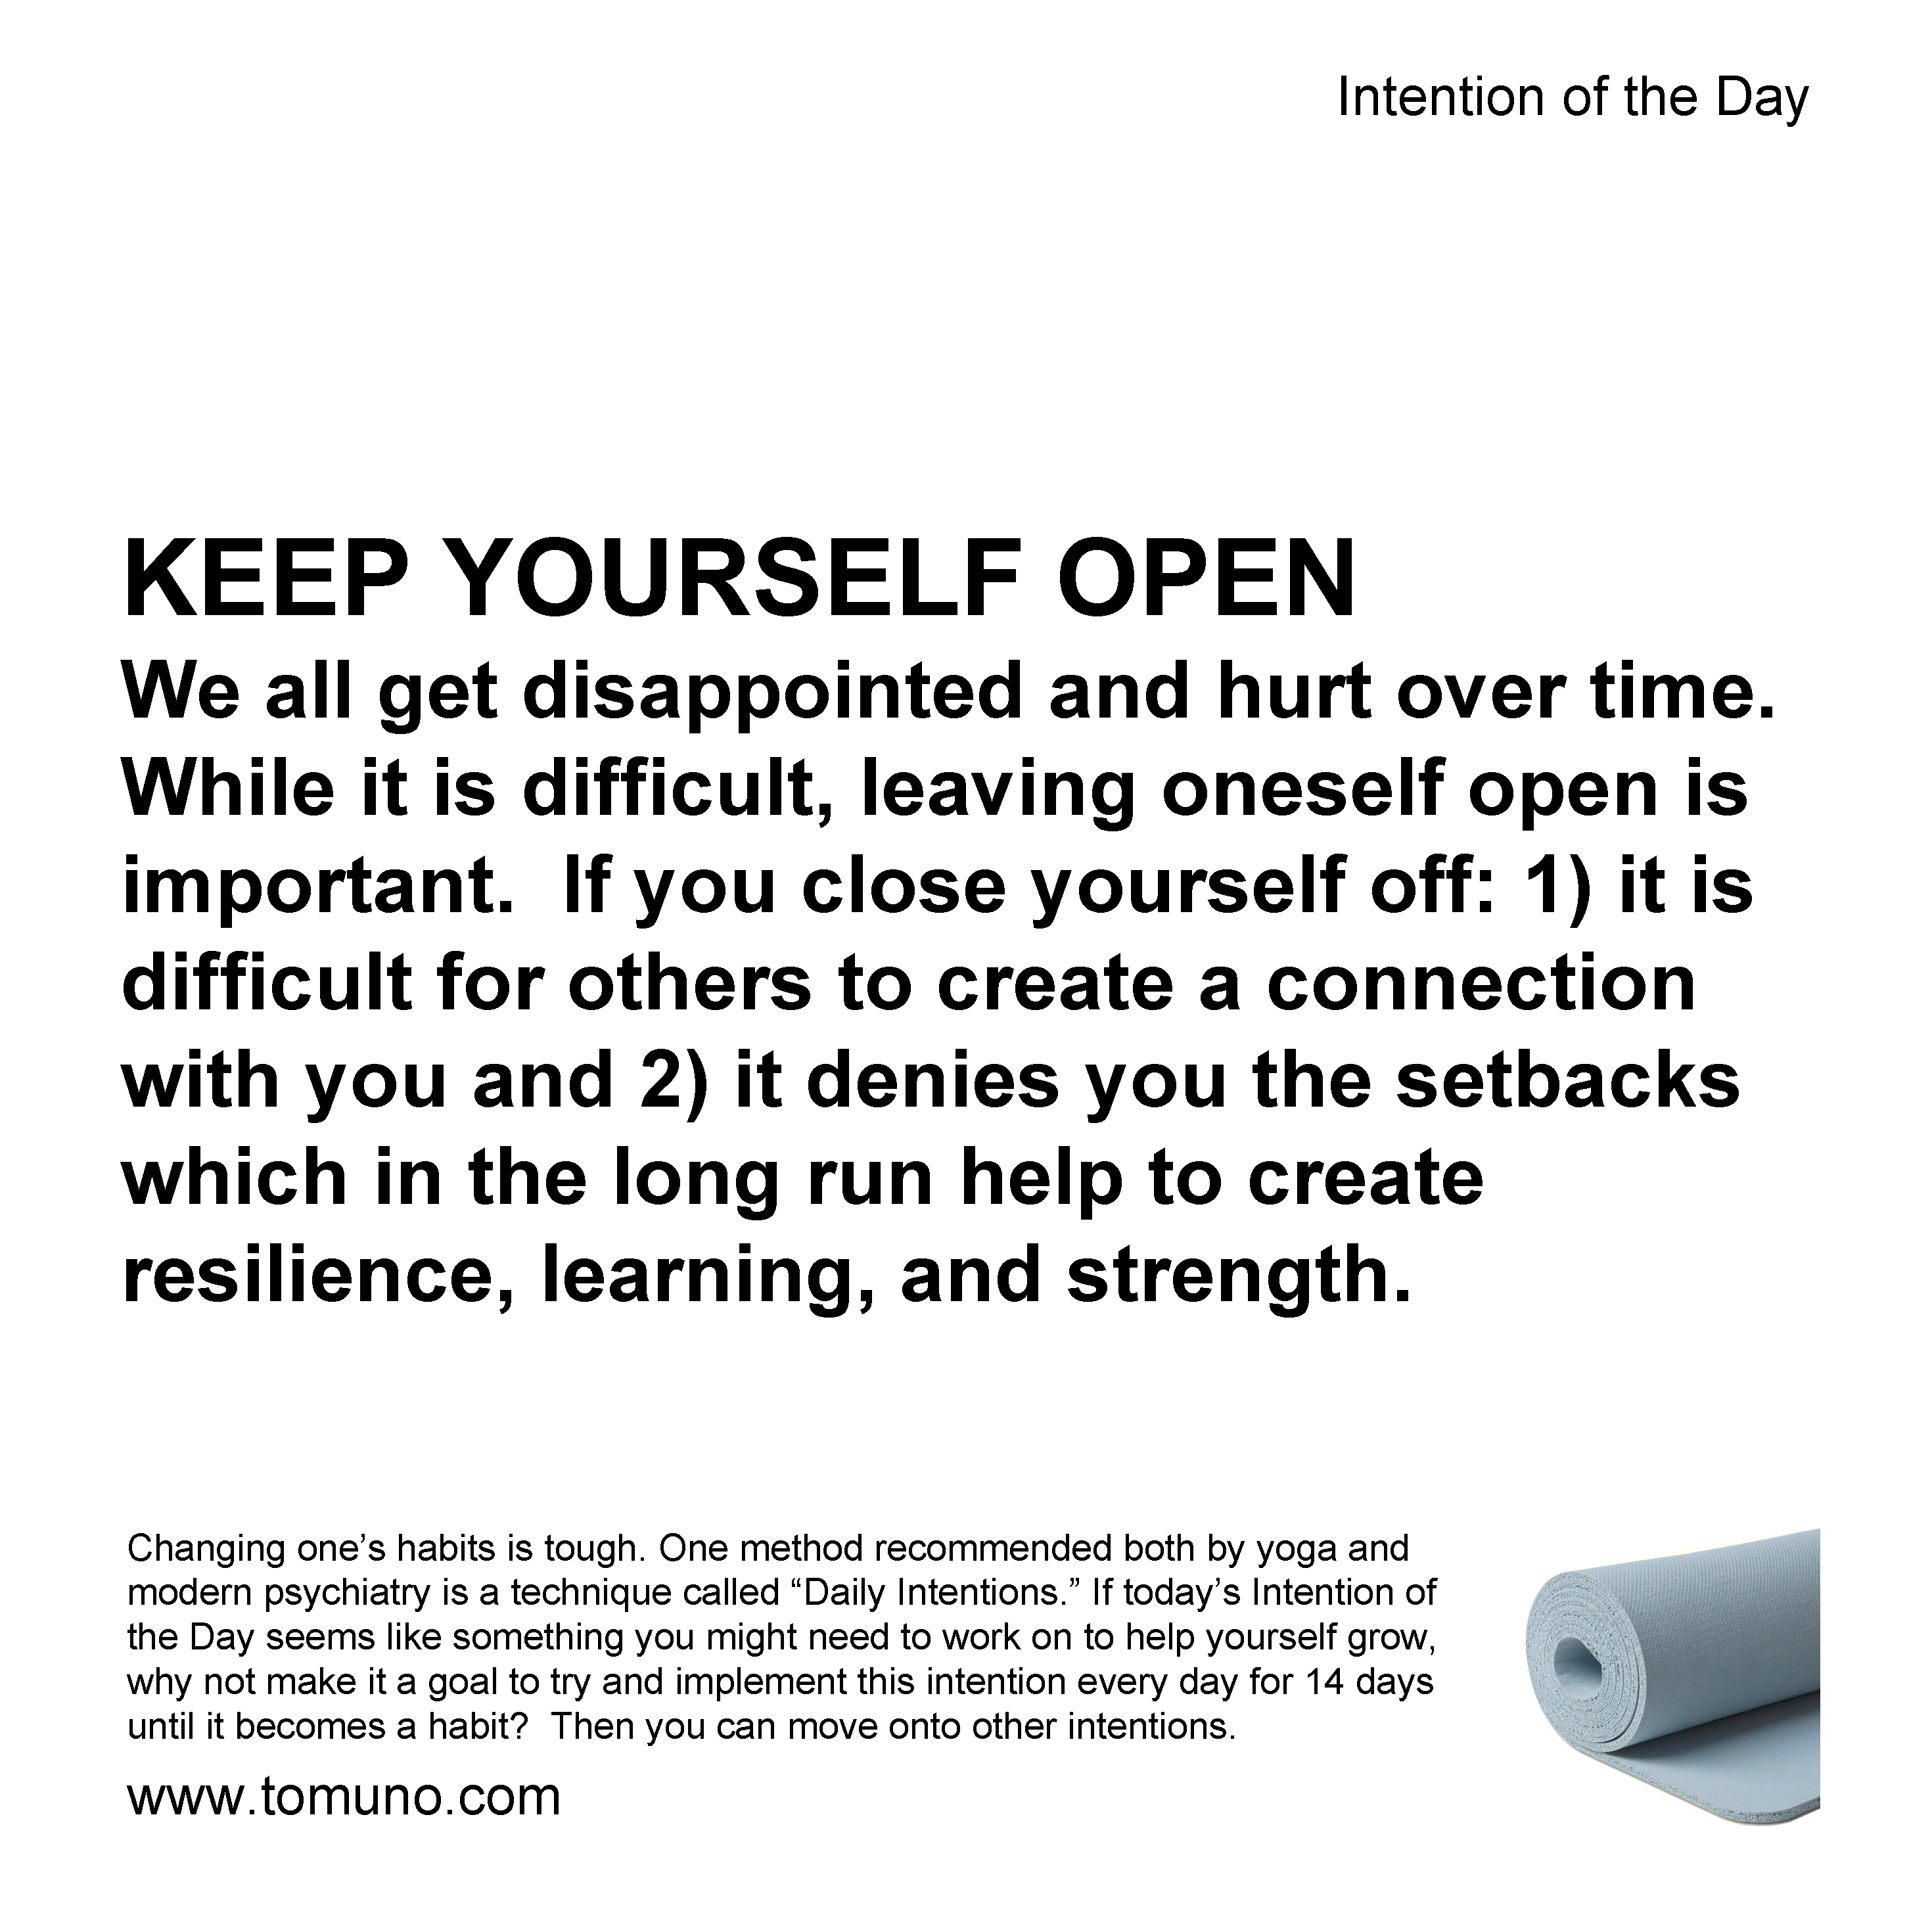 Keep yourself open (Intention of the Day iotd ). Speaking